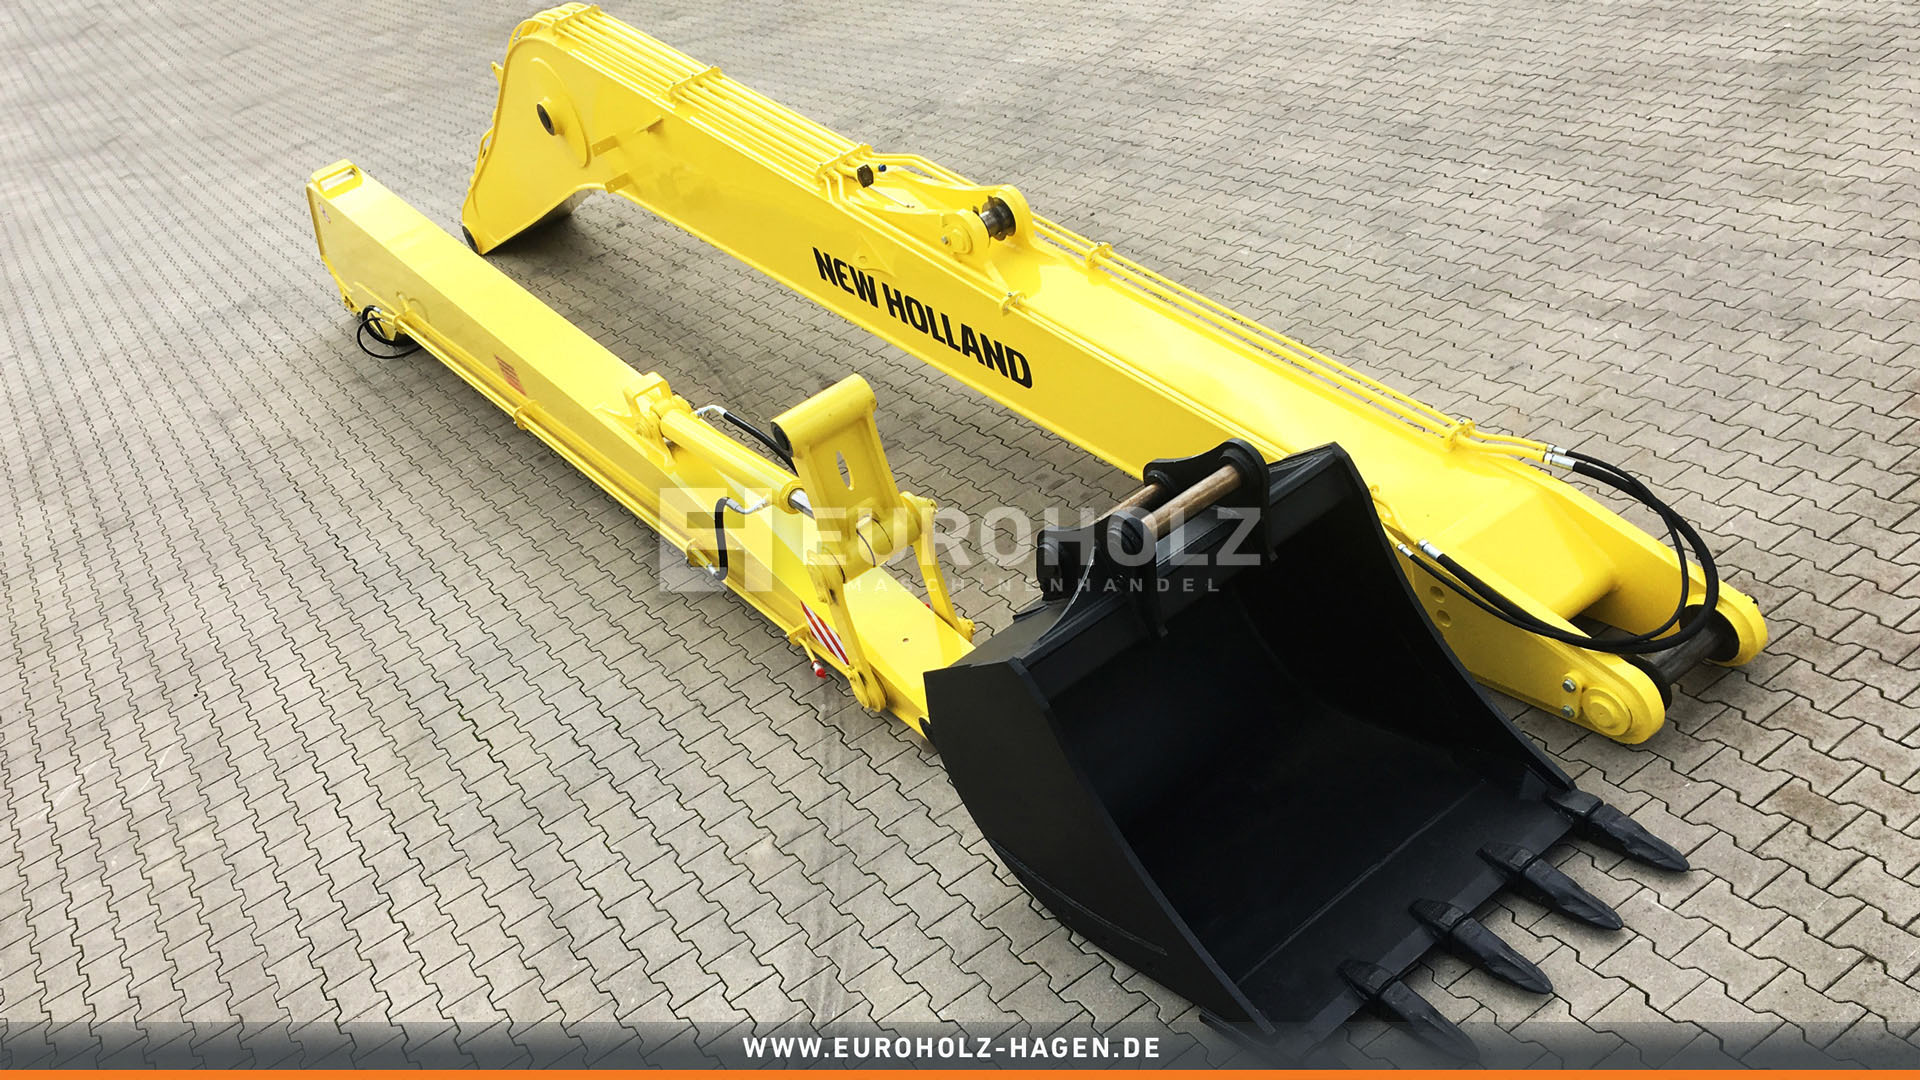 16 m Long Reach for New Holland 305C